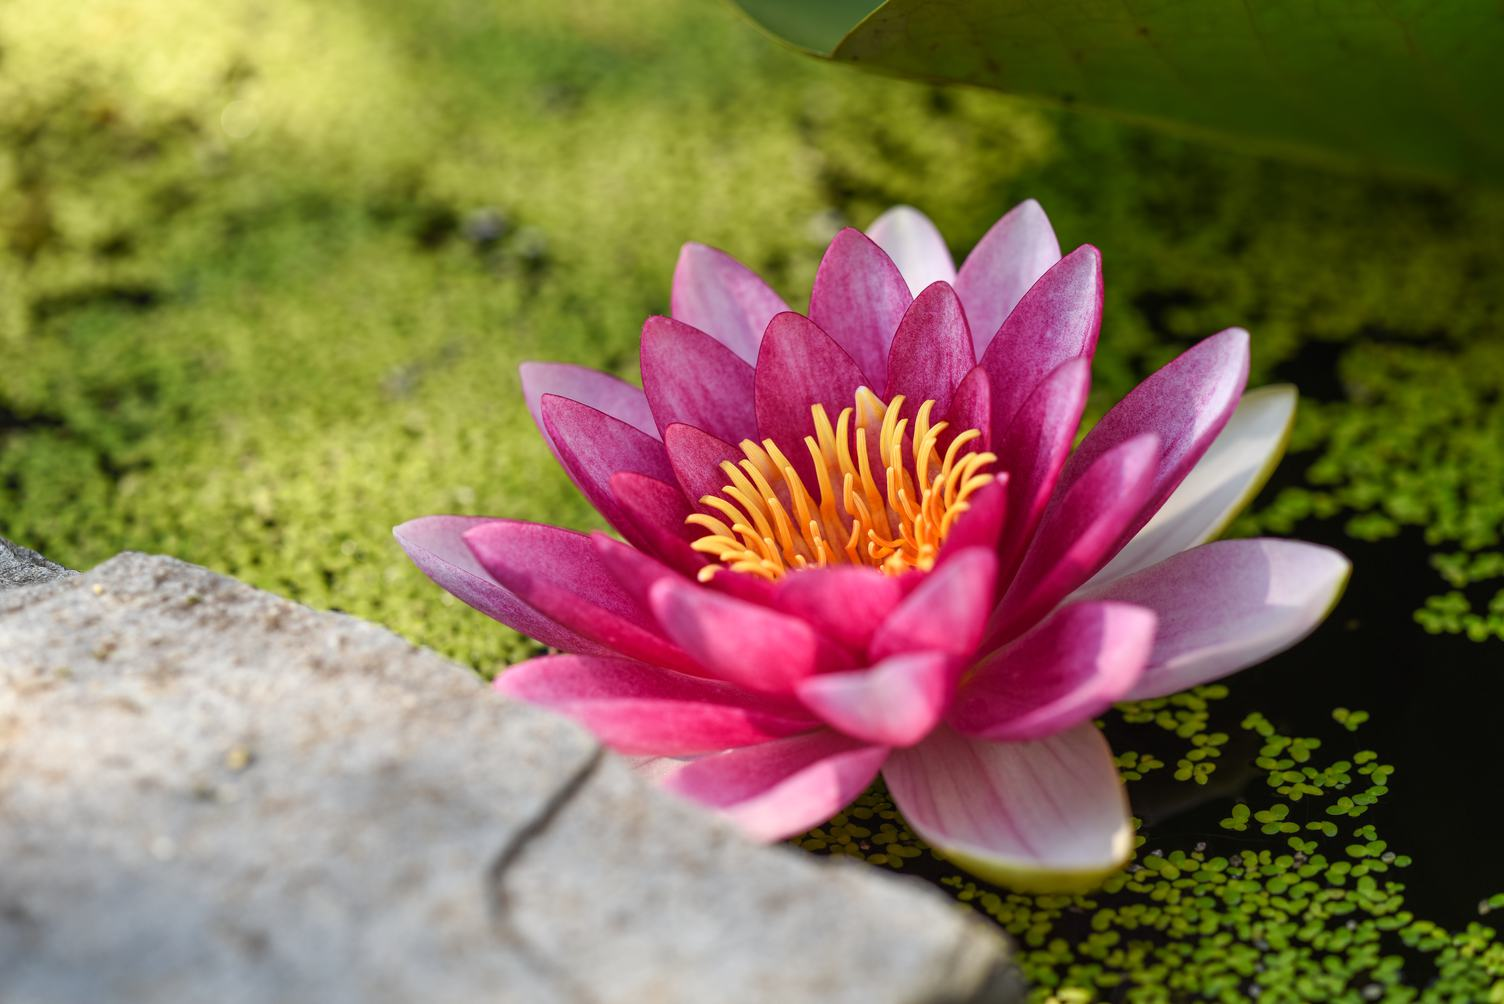 Pink Water Lily and Duckweed in the Pond